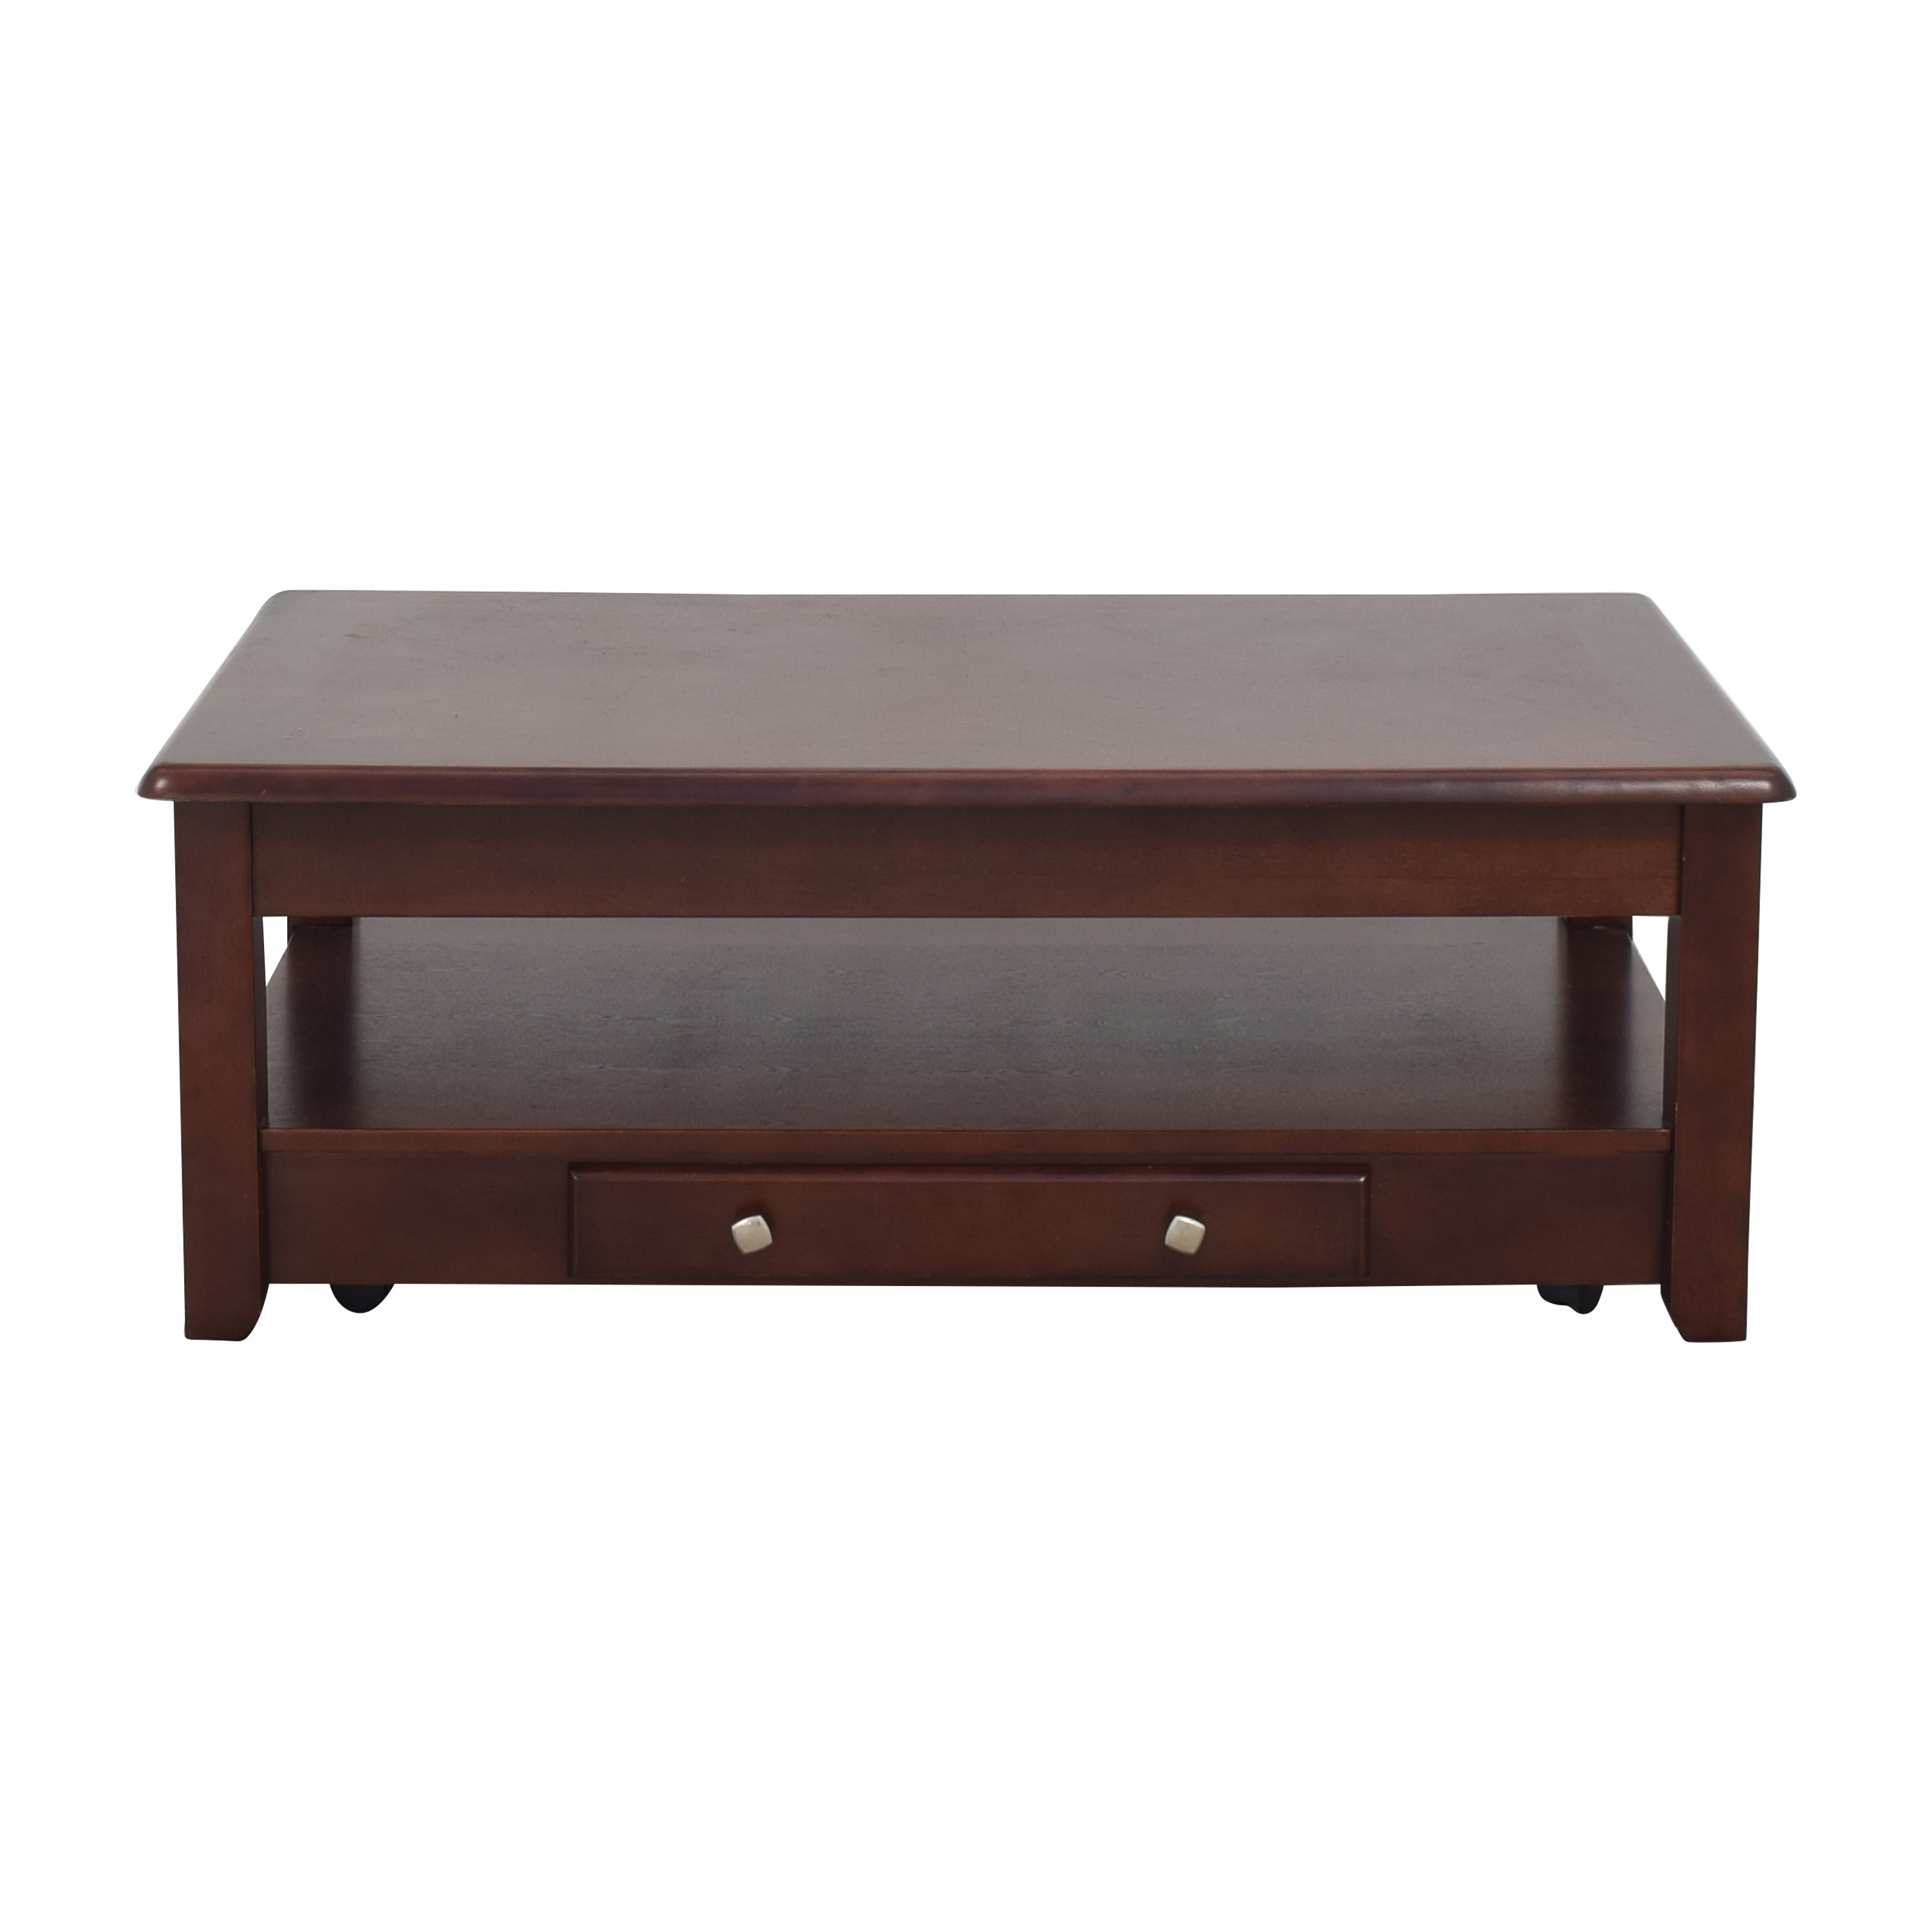 buy Raymour & Flanigan Storage Coffee Table Raymour & Flanigan Tables